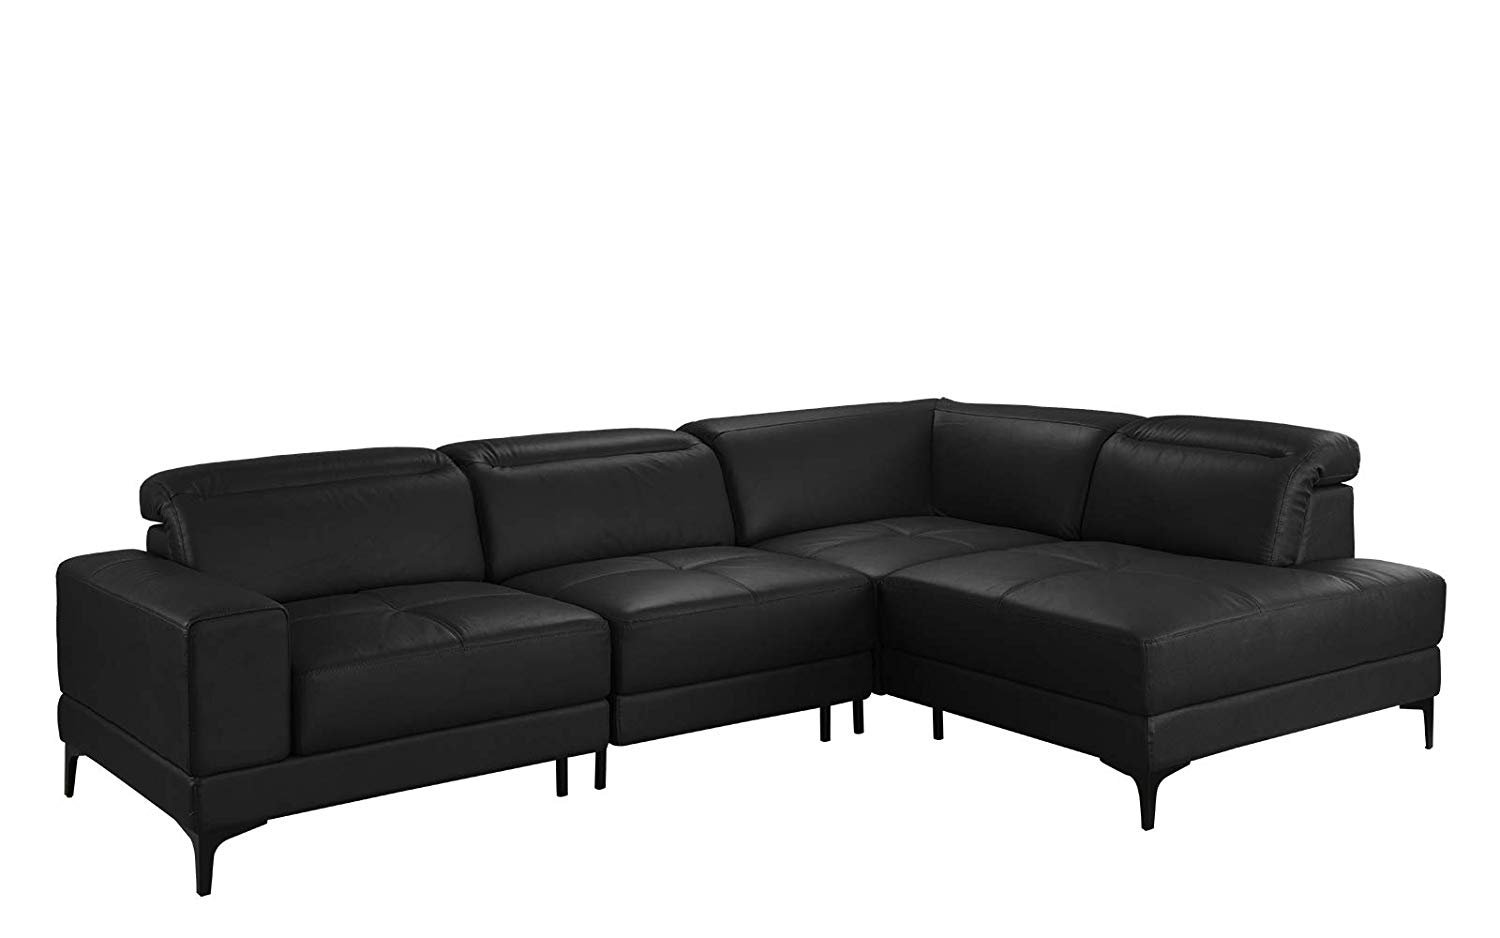 Large Modern Leather Sectional Sofa, Living Room L-Shape Couch ...